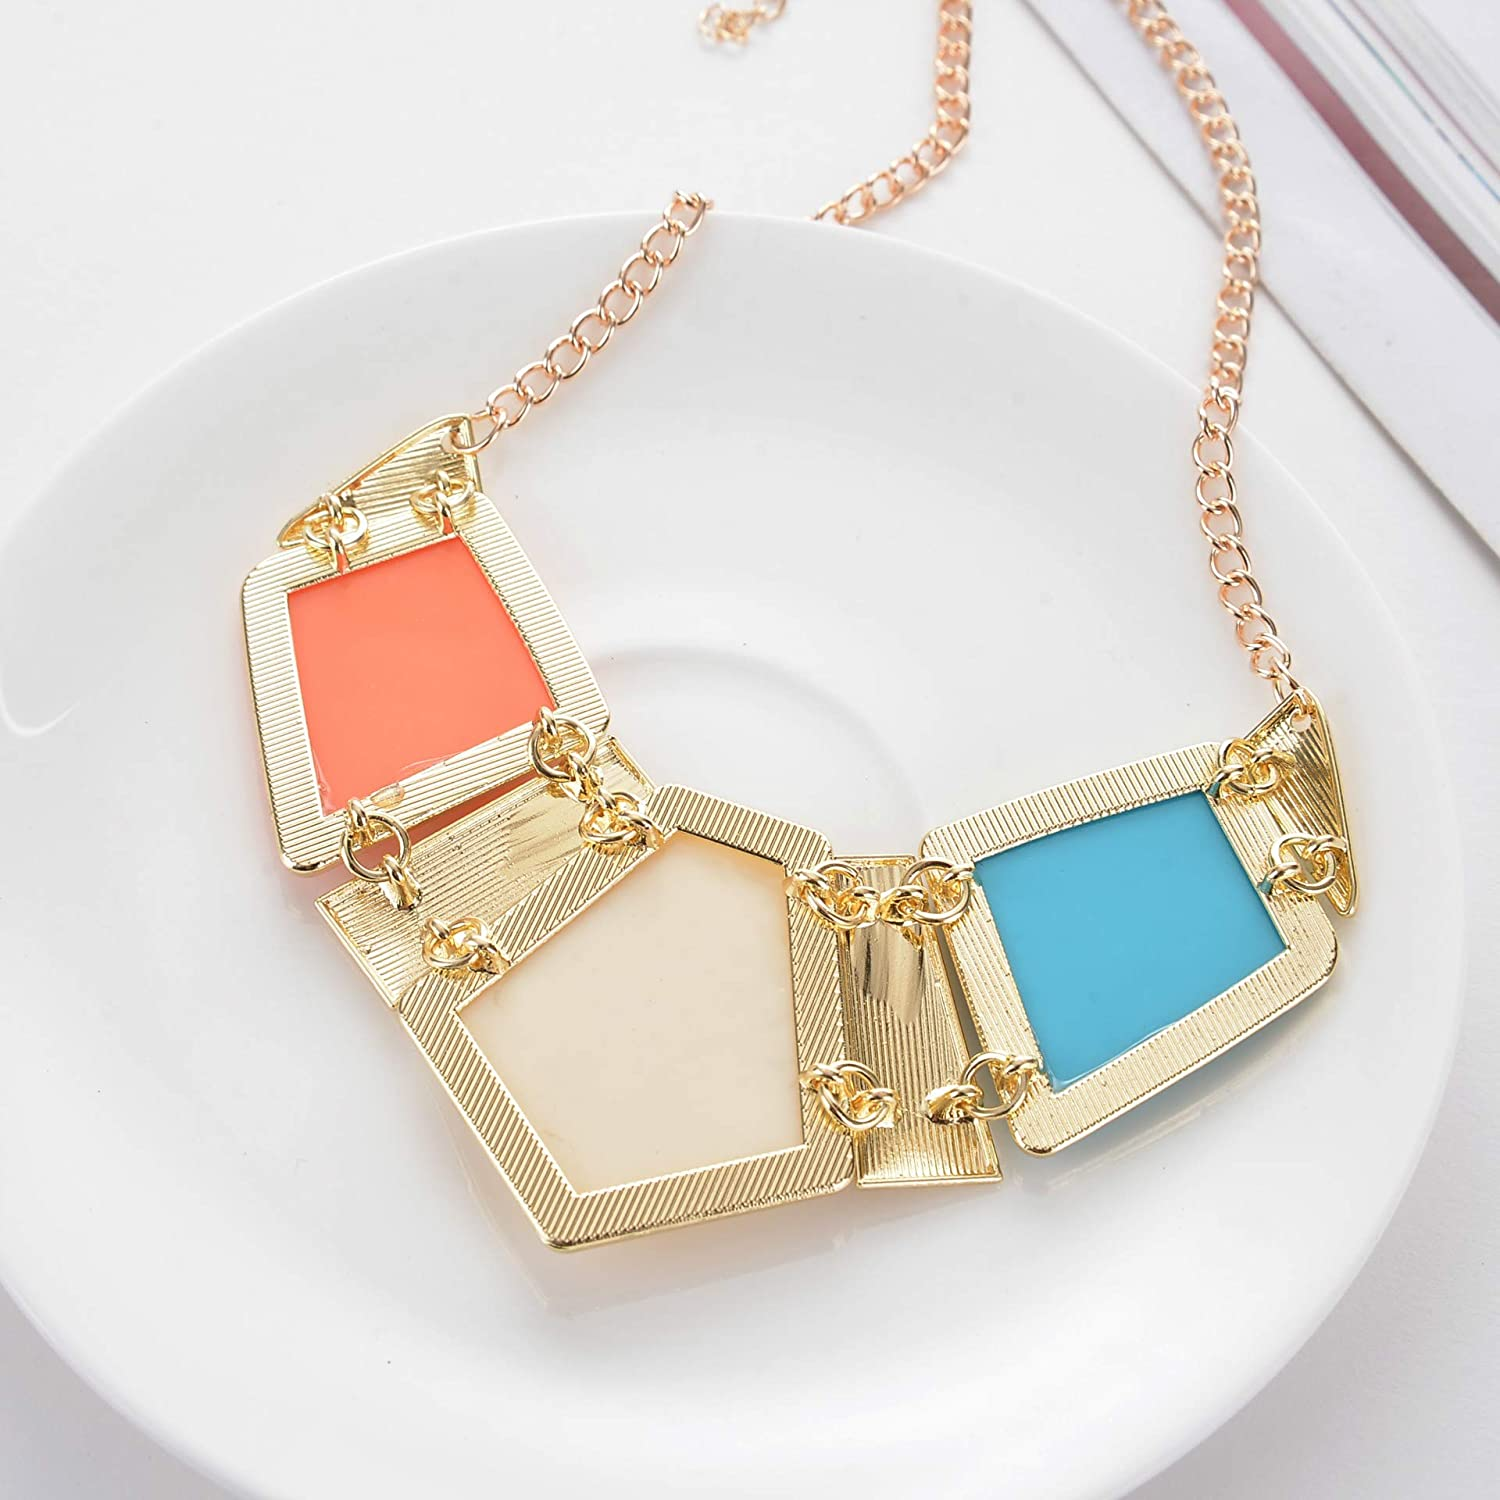 Hobbyant Luxury Fashion Square gems Versatile Geometry Necklace for Women